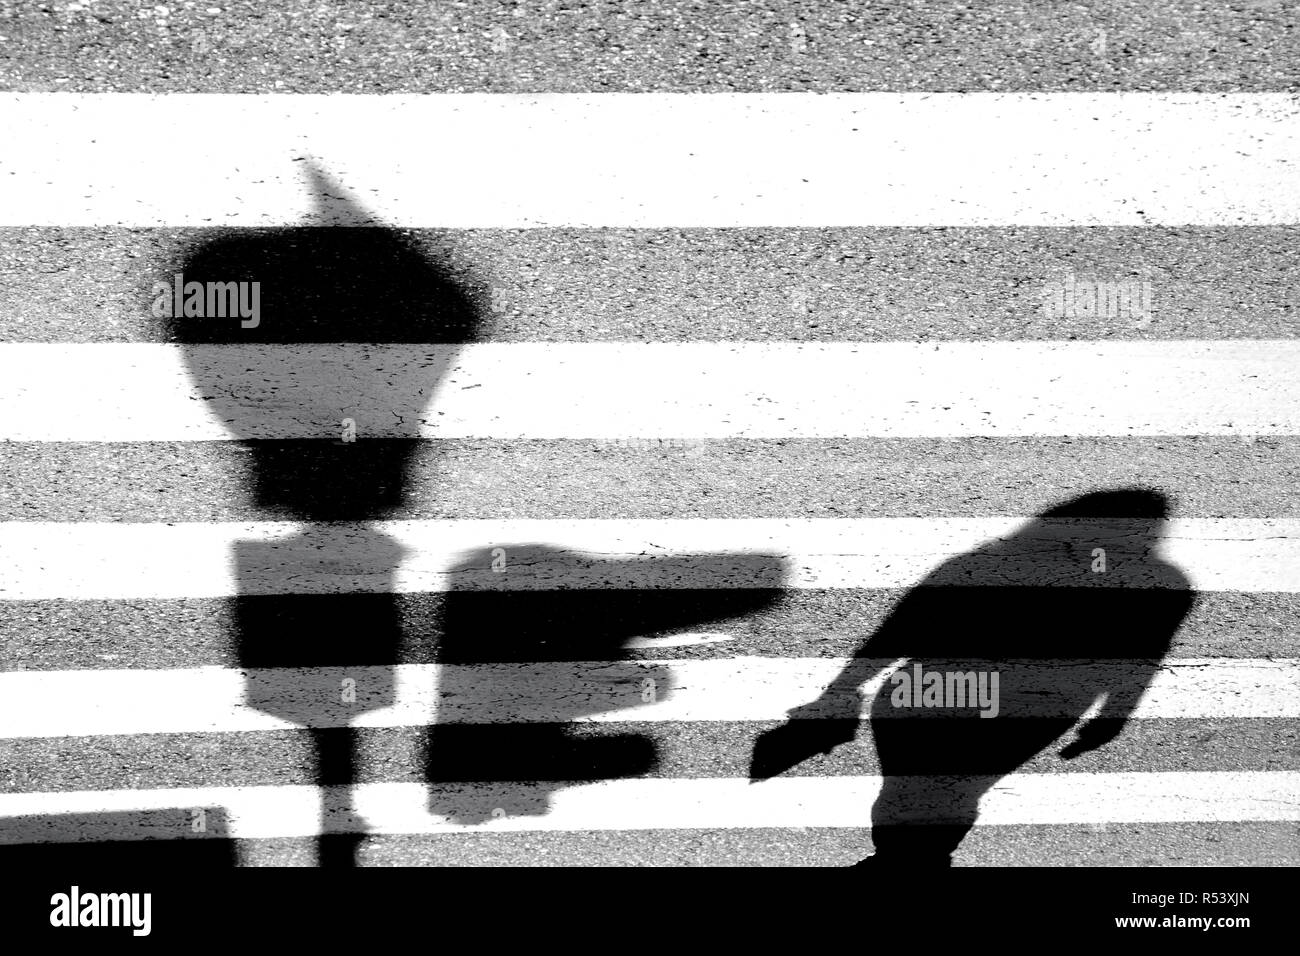 Blurry shadow of one pedestrian crossing the city street - Stock Image